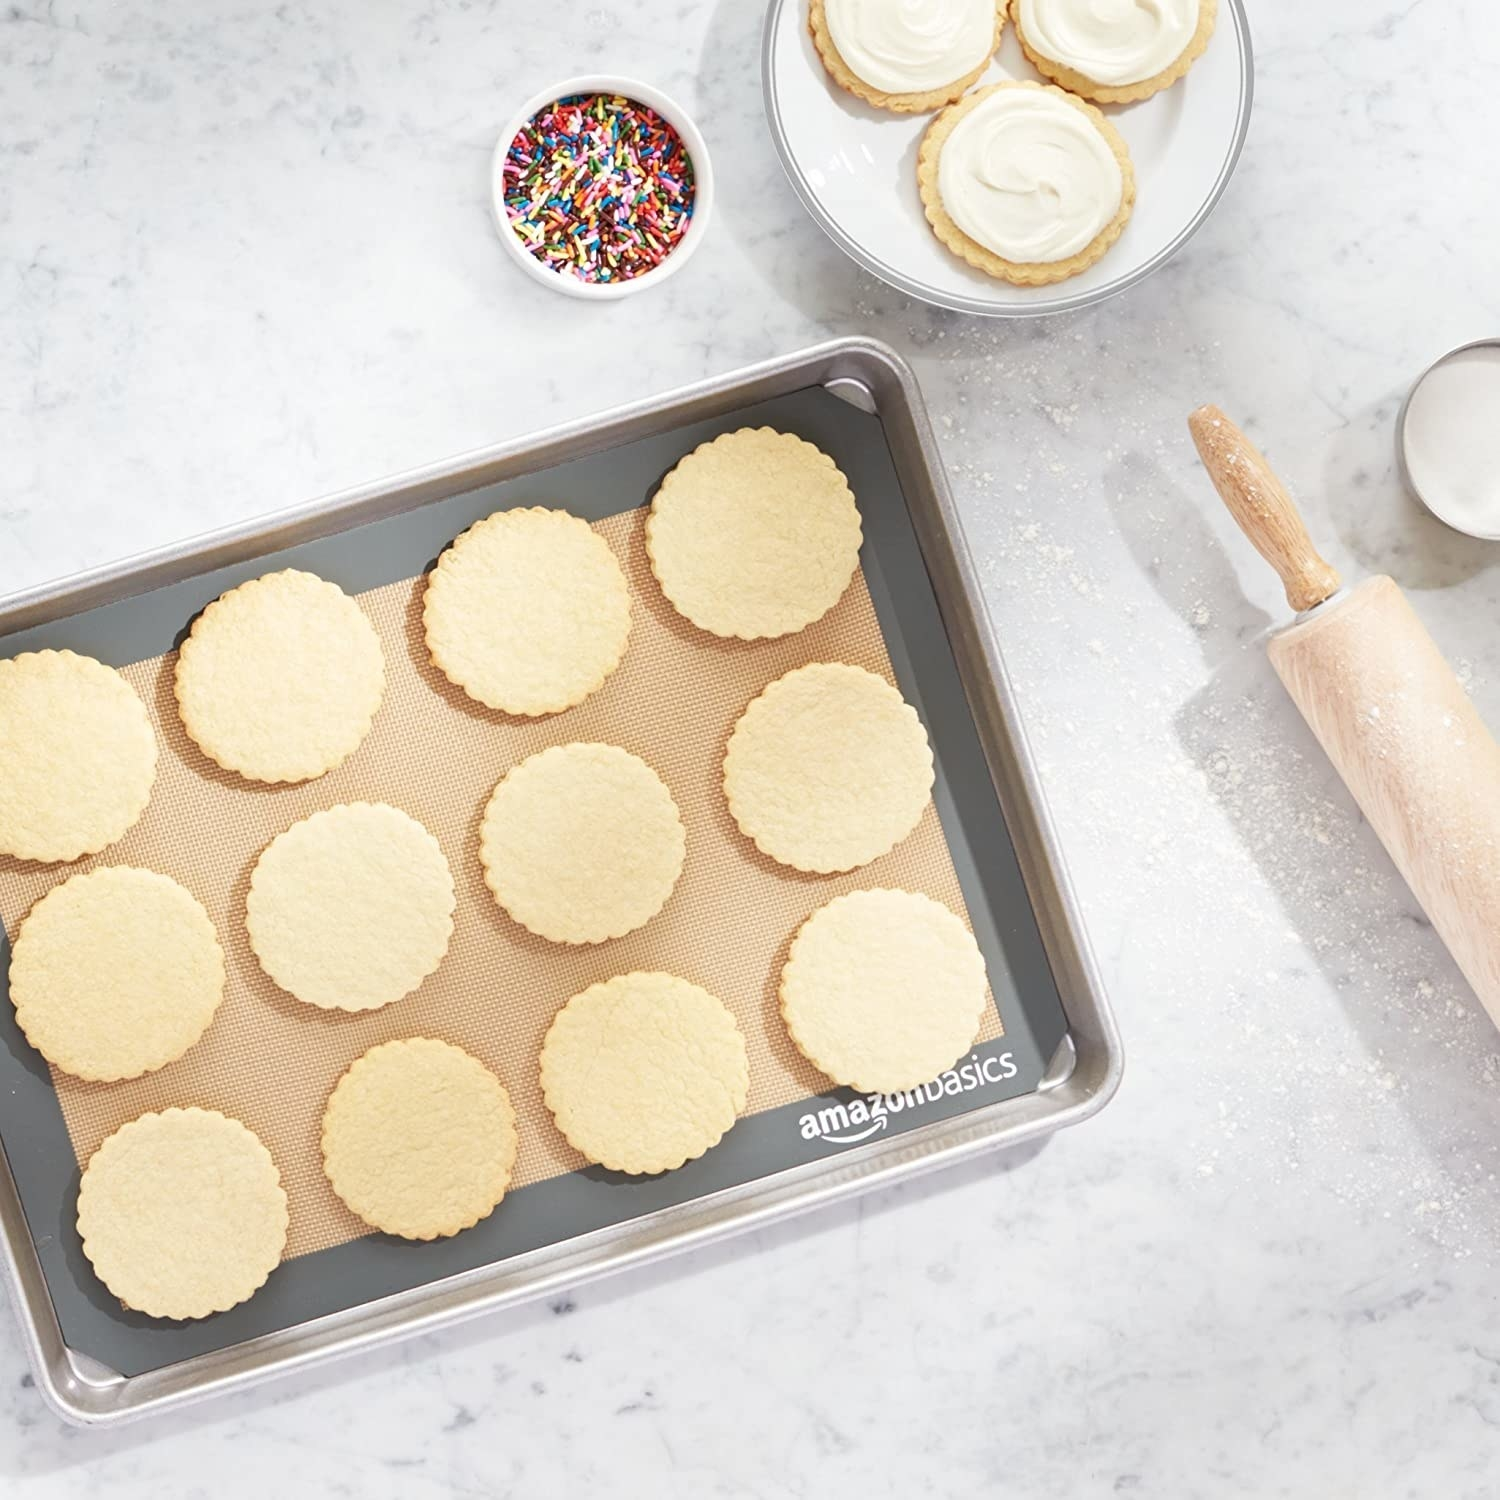 A silicone baking mat sheet lining a baking tray with cookies kept on it